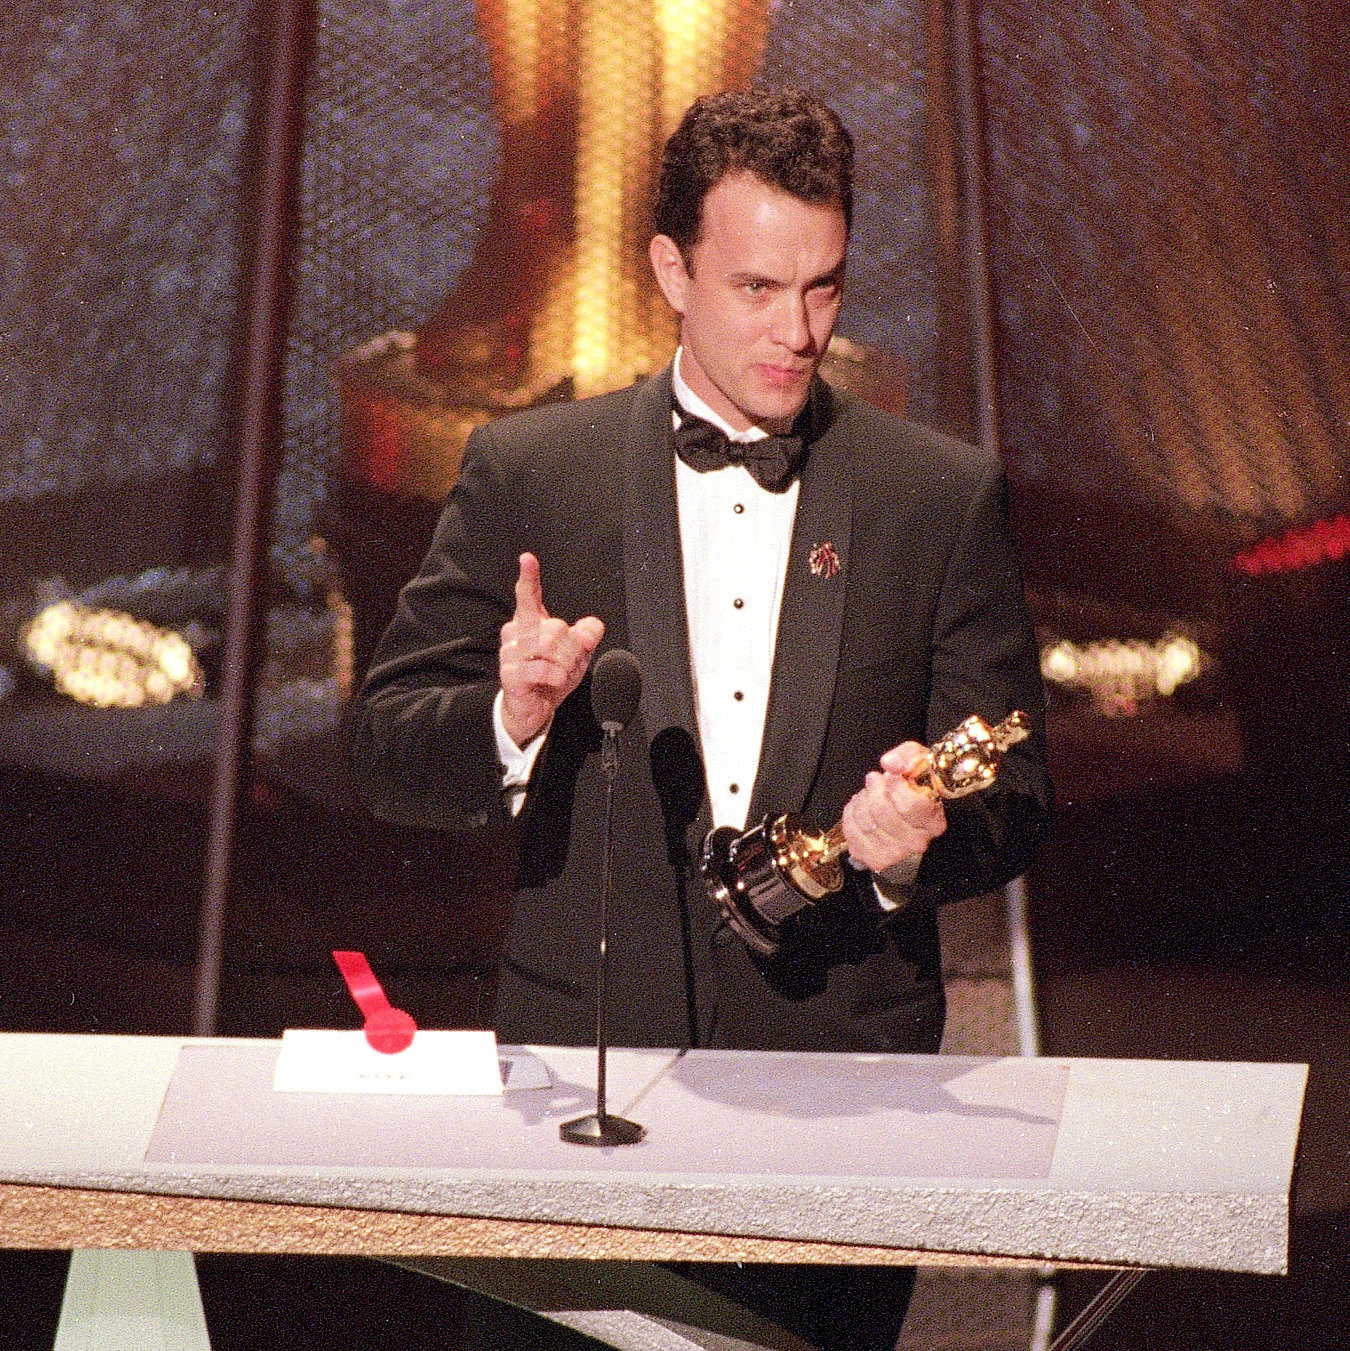 Tom Hanks at Oscars 1994